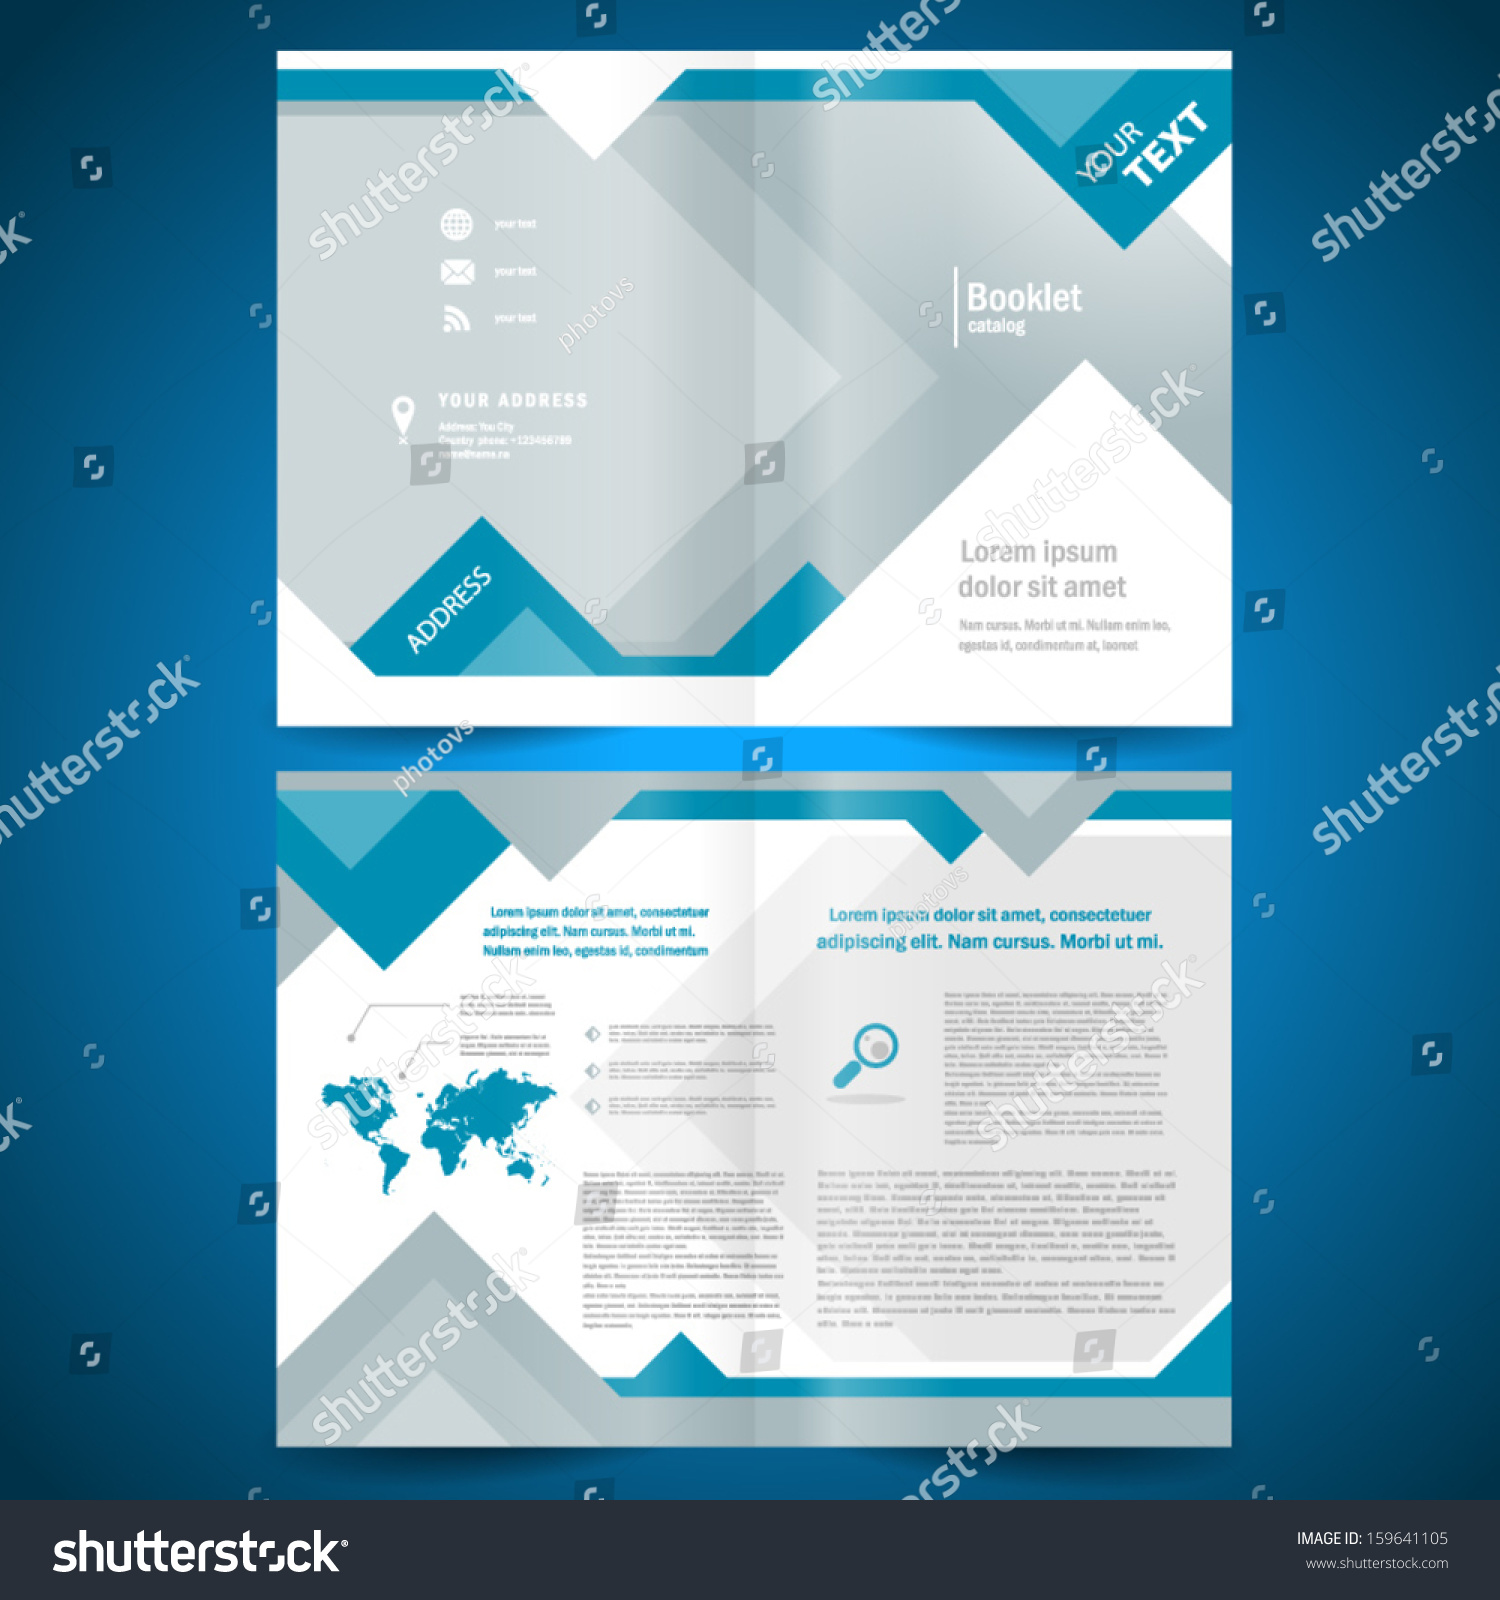 Custom Card Template template design : Booklet Template Design Catalog Brochure Folder Geometric ...